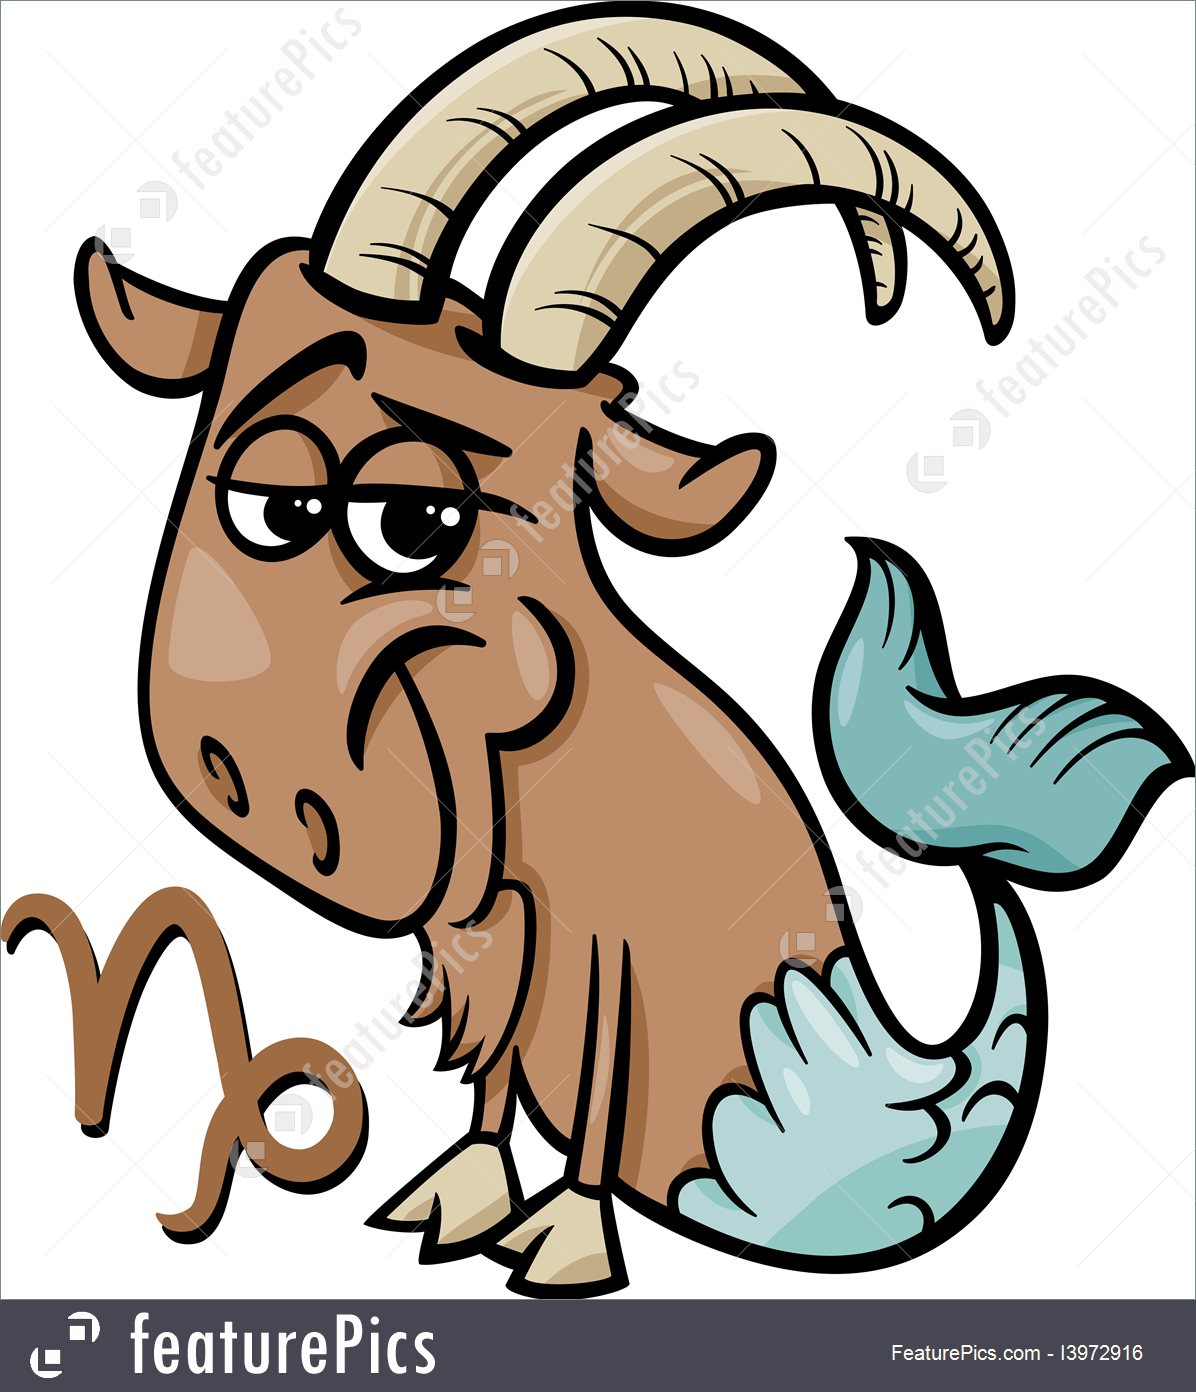 1196x1392 Capricorn Or The Sea Goat Zodiac Sign Illustration